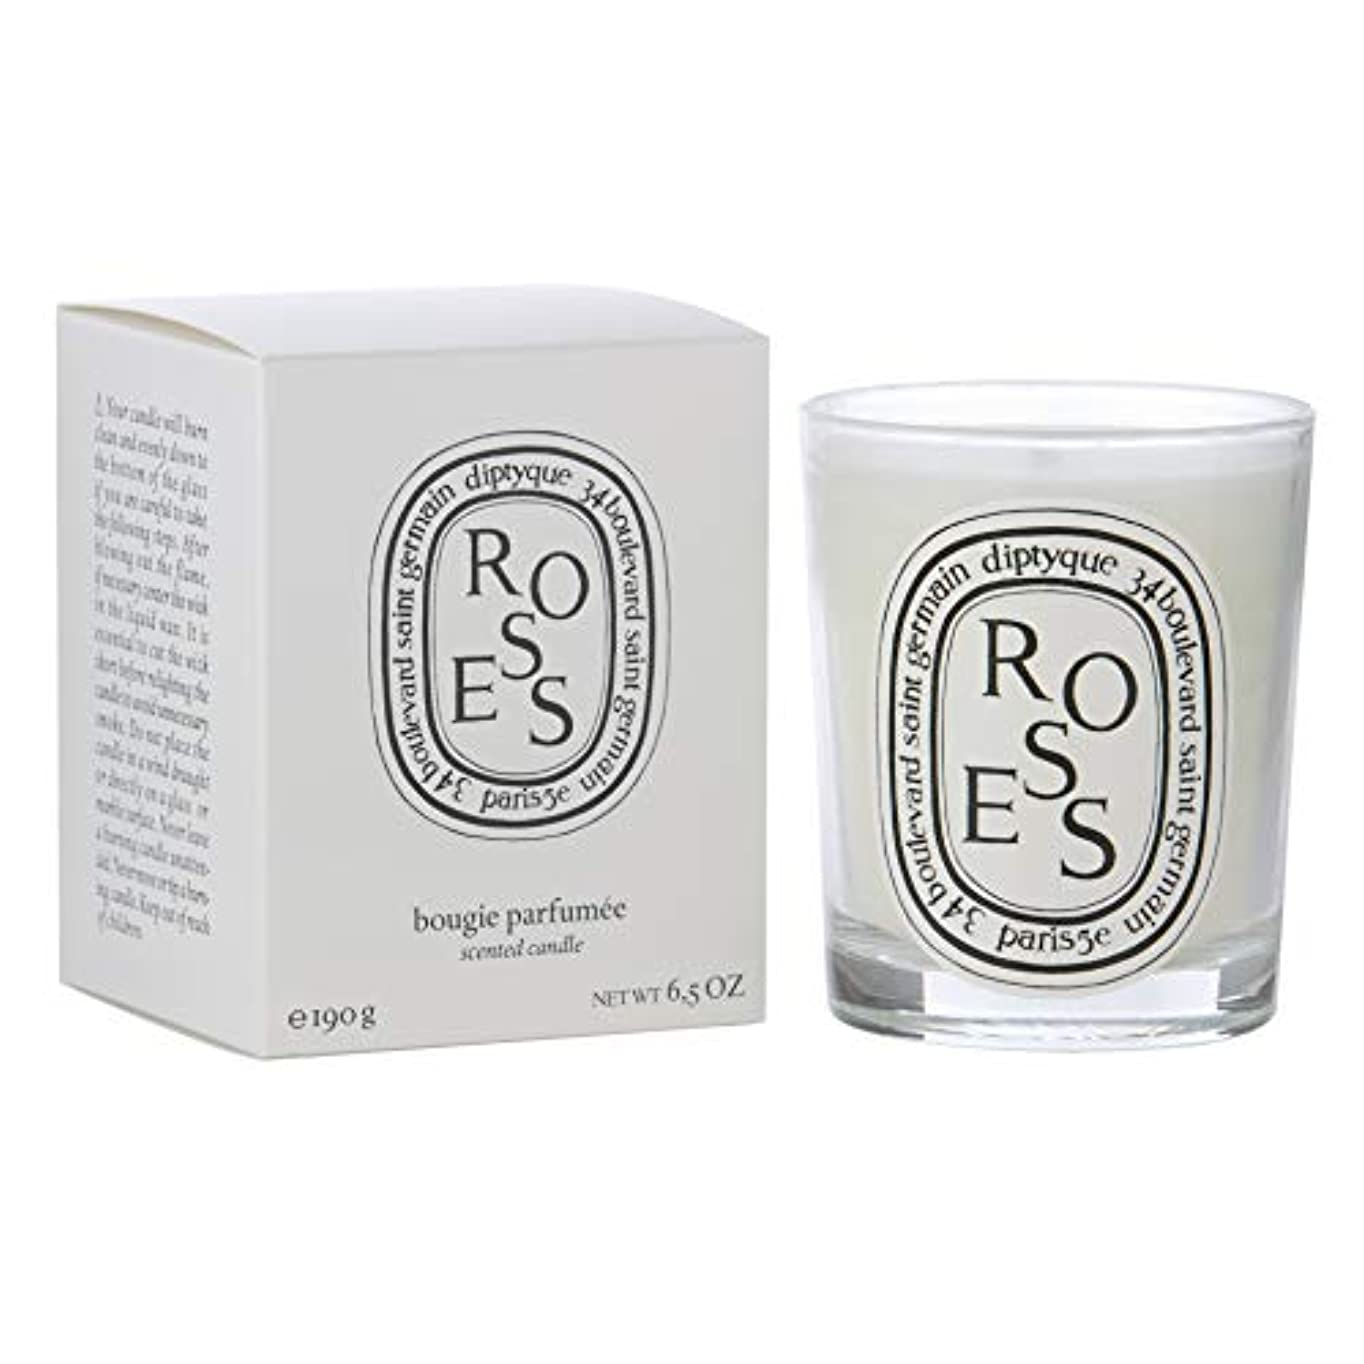 [Diptyque] Diptyqueバラの香りのキャンドル190グラム - Diptyque Roses Scented Candle 190g [並行輸入品]